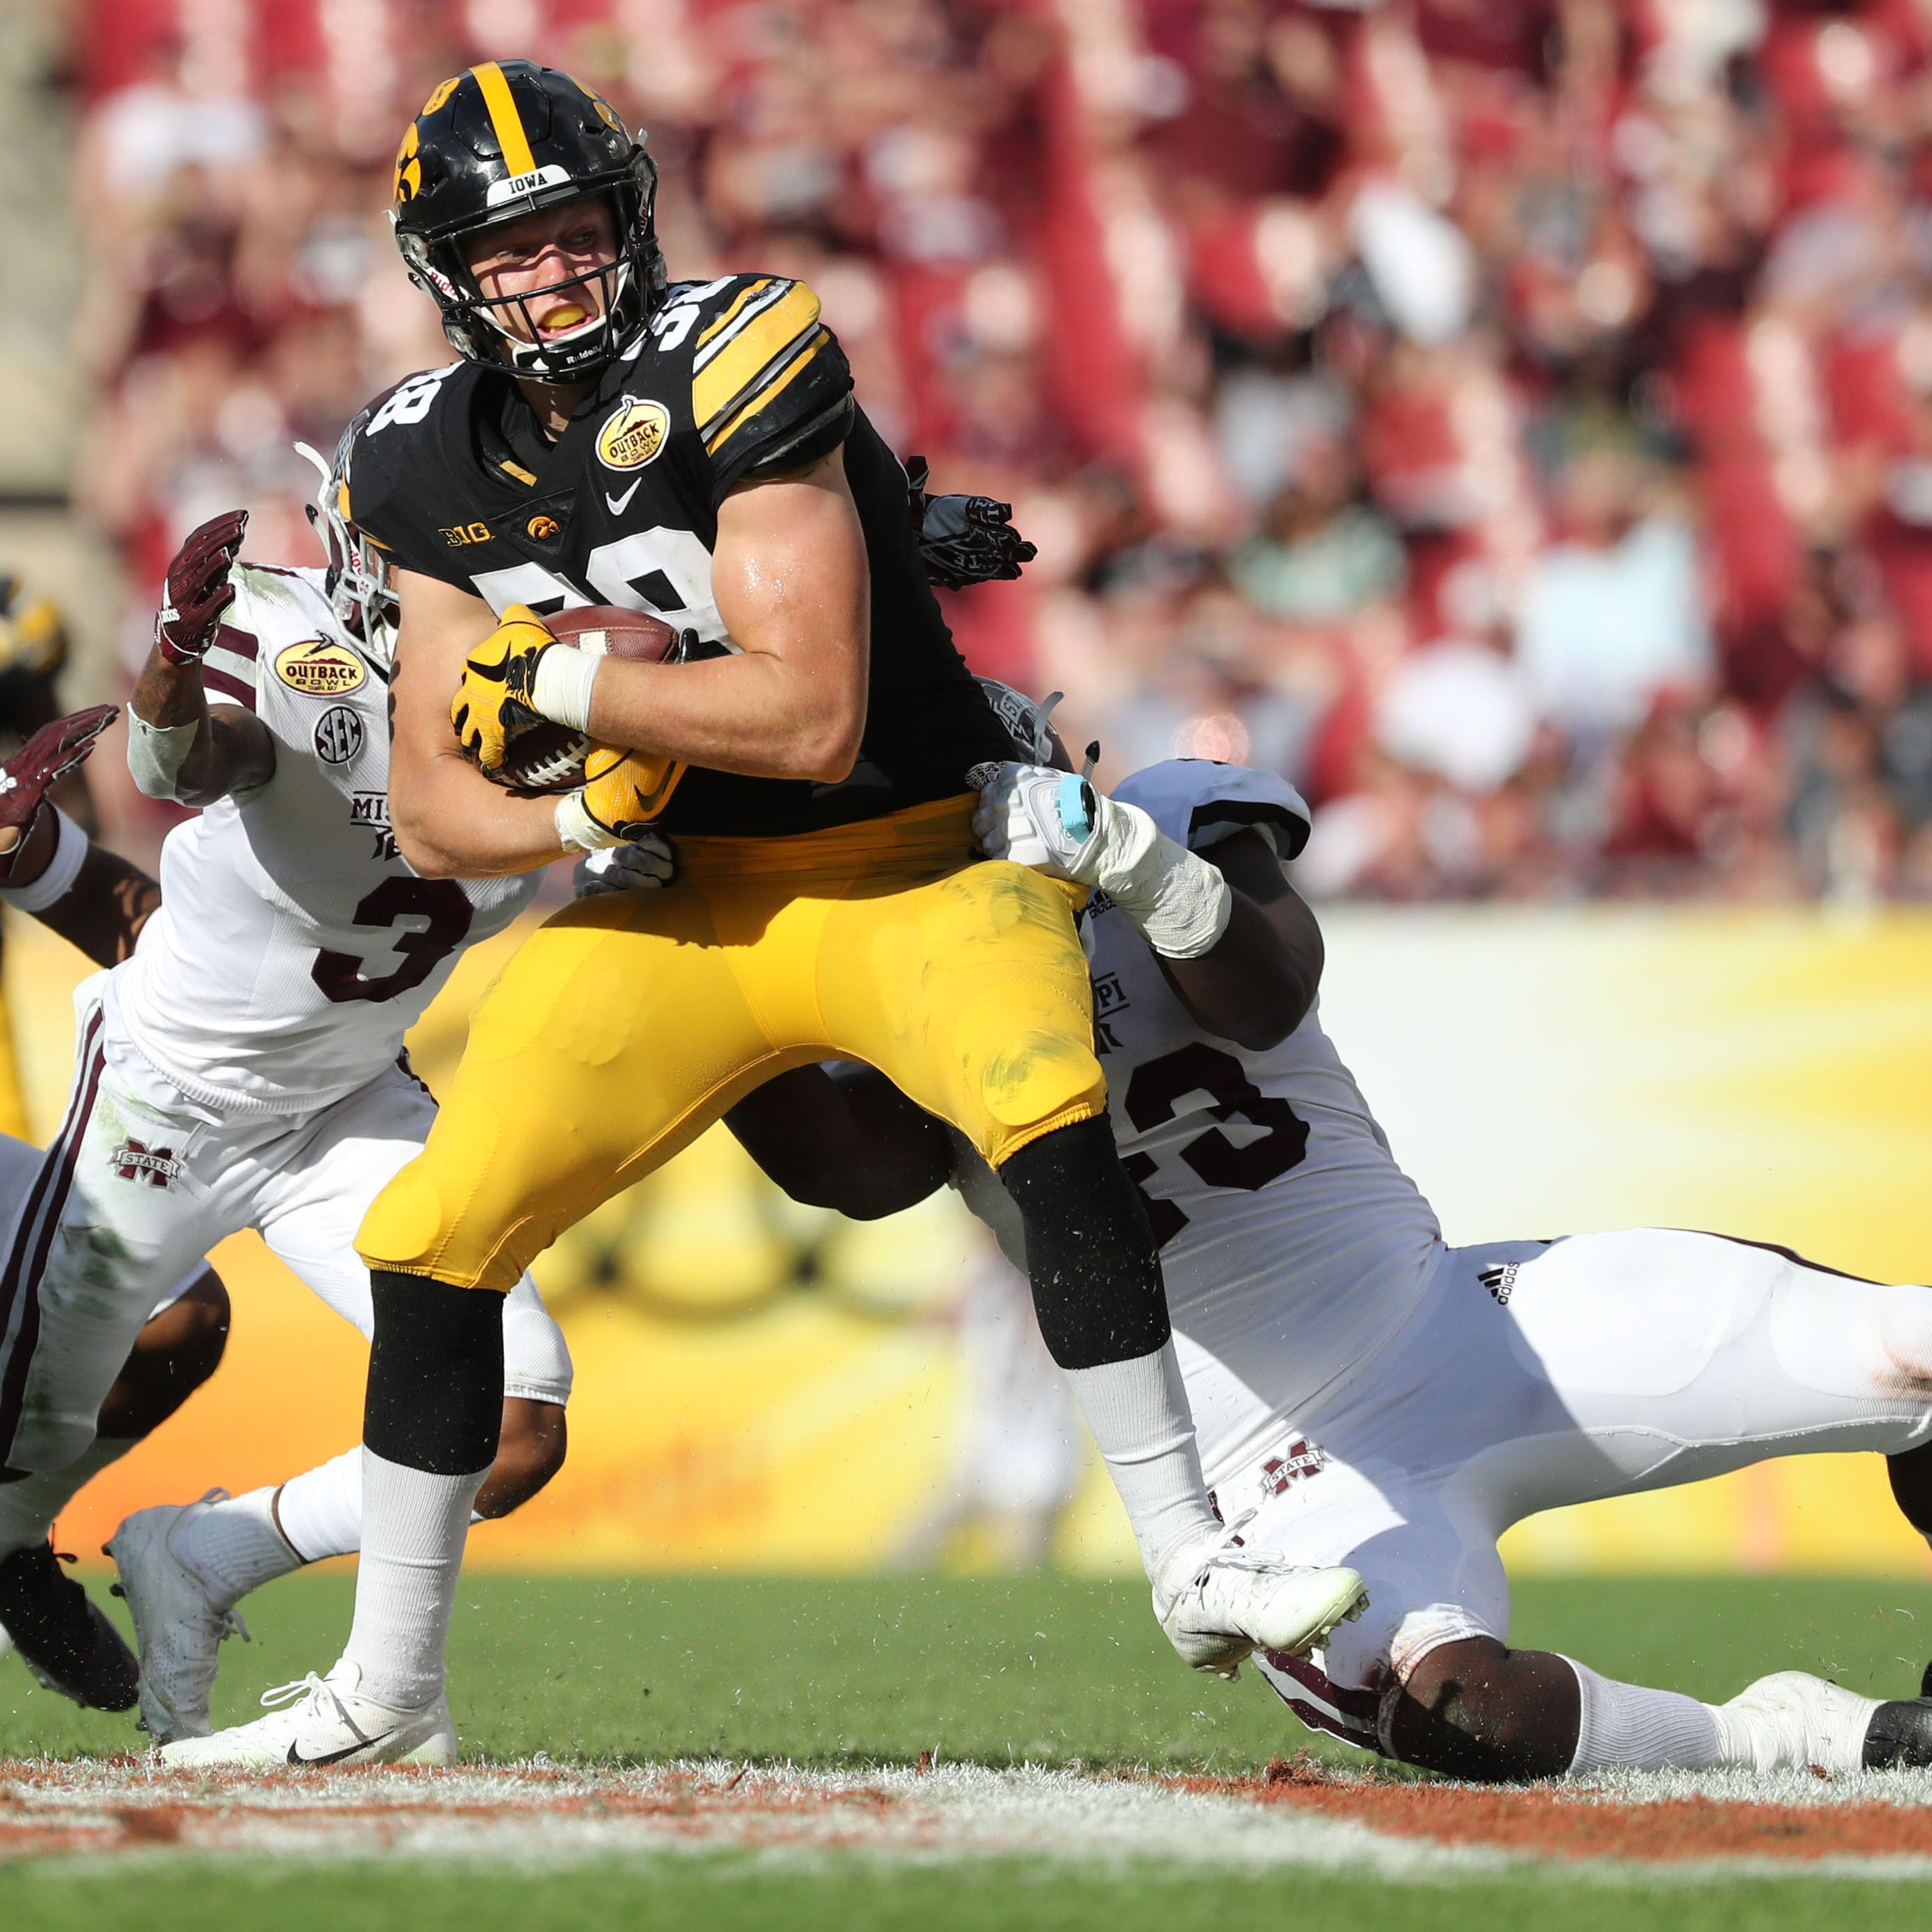 Here's why Iowa TE T.J. Hockenson makes sense for Lions in NFL draft